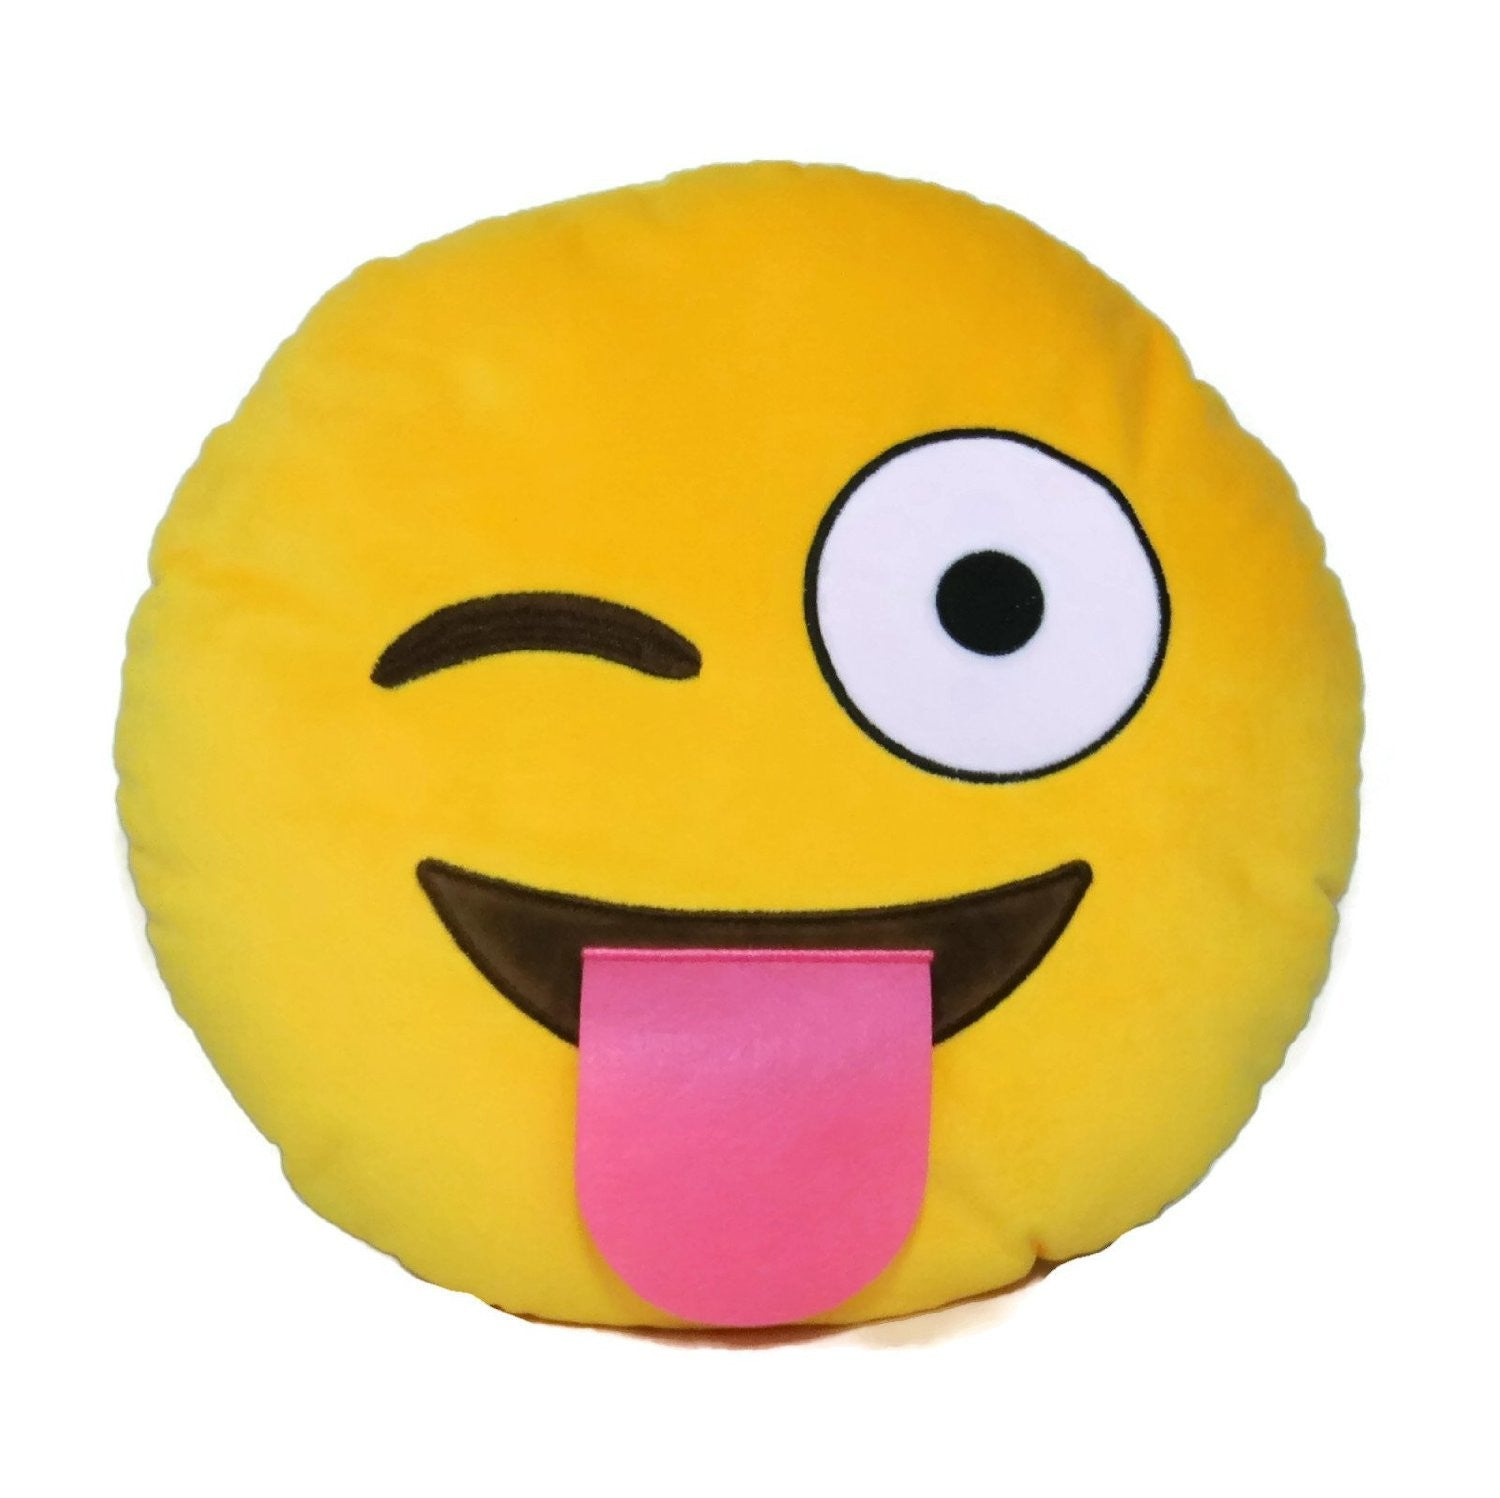 Wink Face Yellow Emoji Pillow Smiley Plush Cushion Cell Phone Emoticon Toy Winky